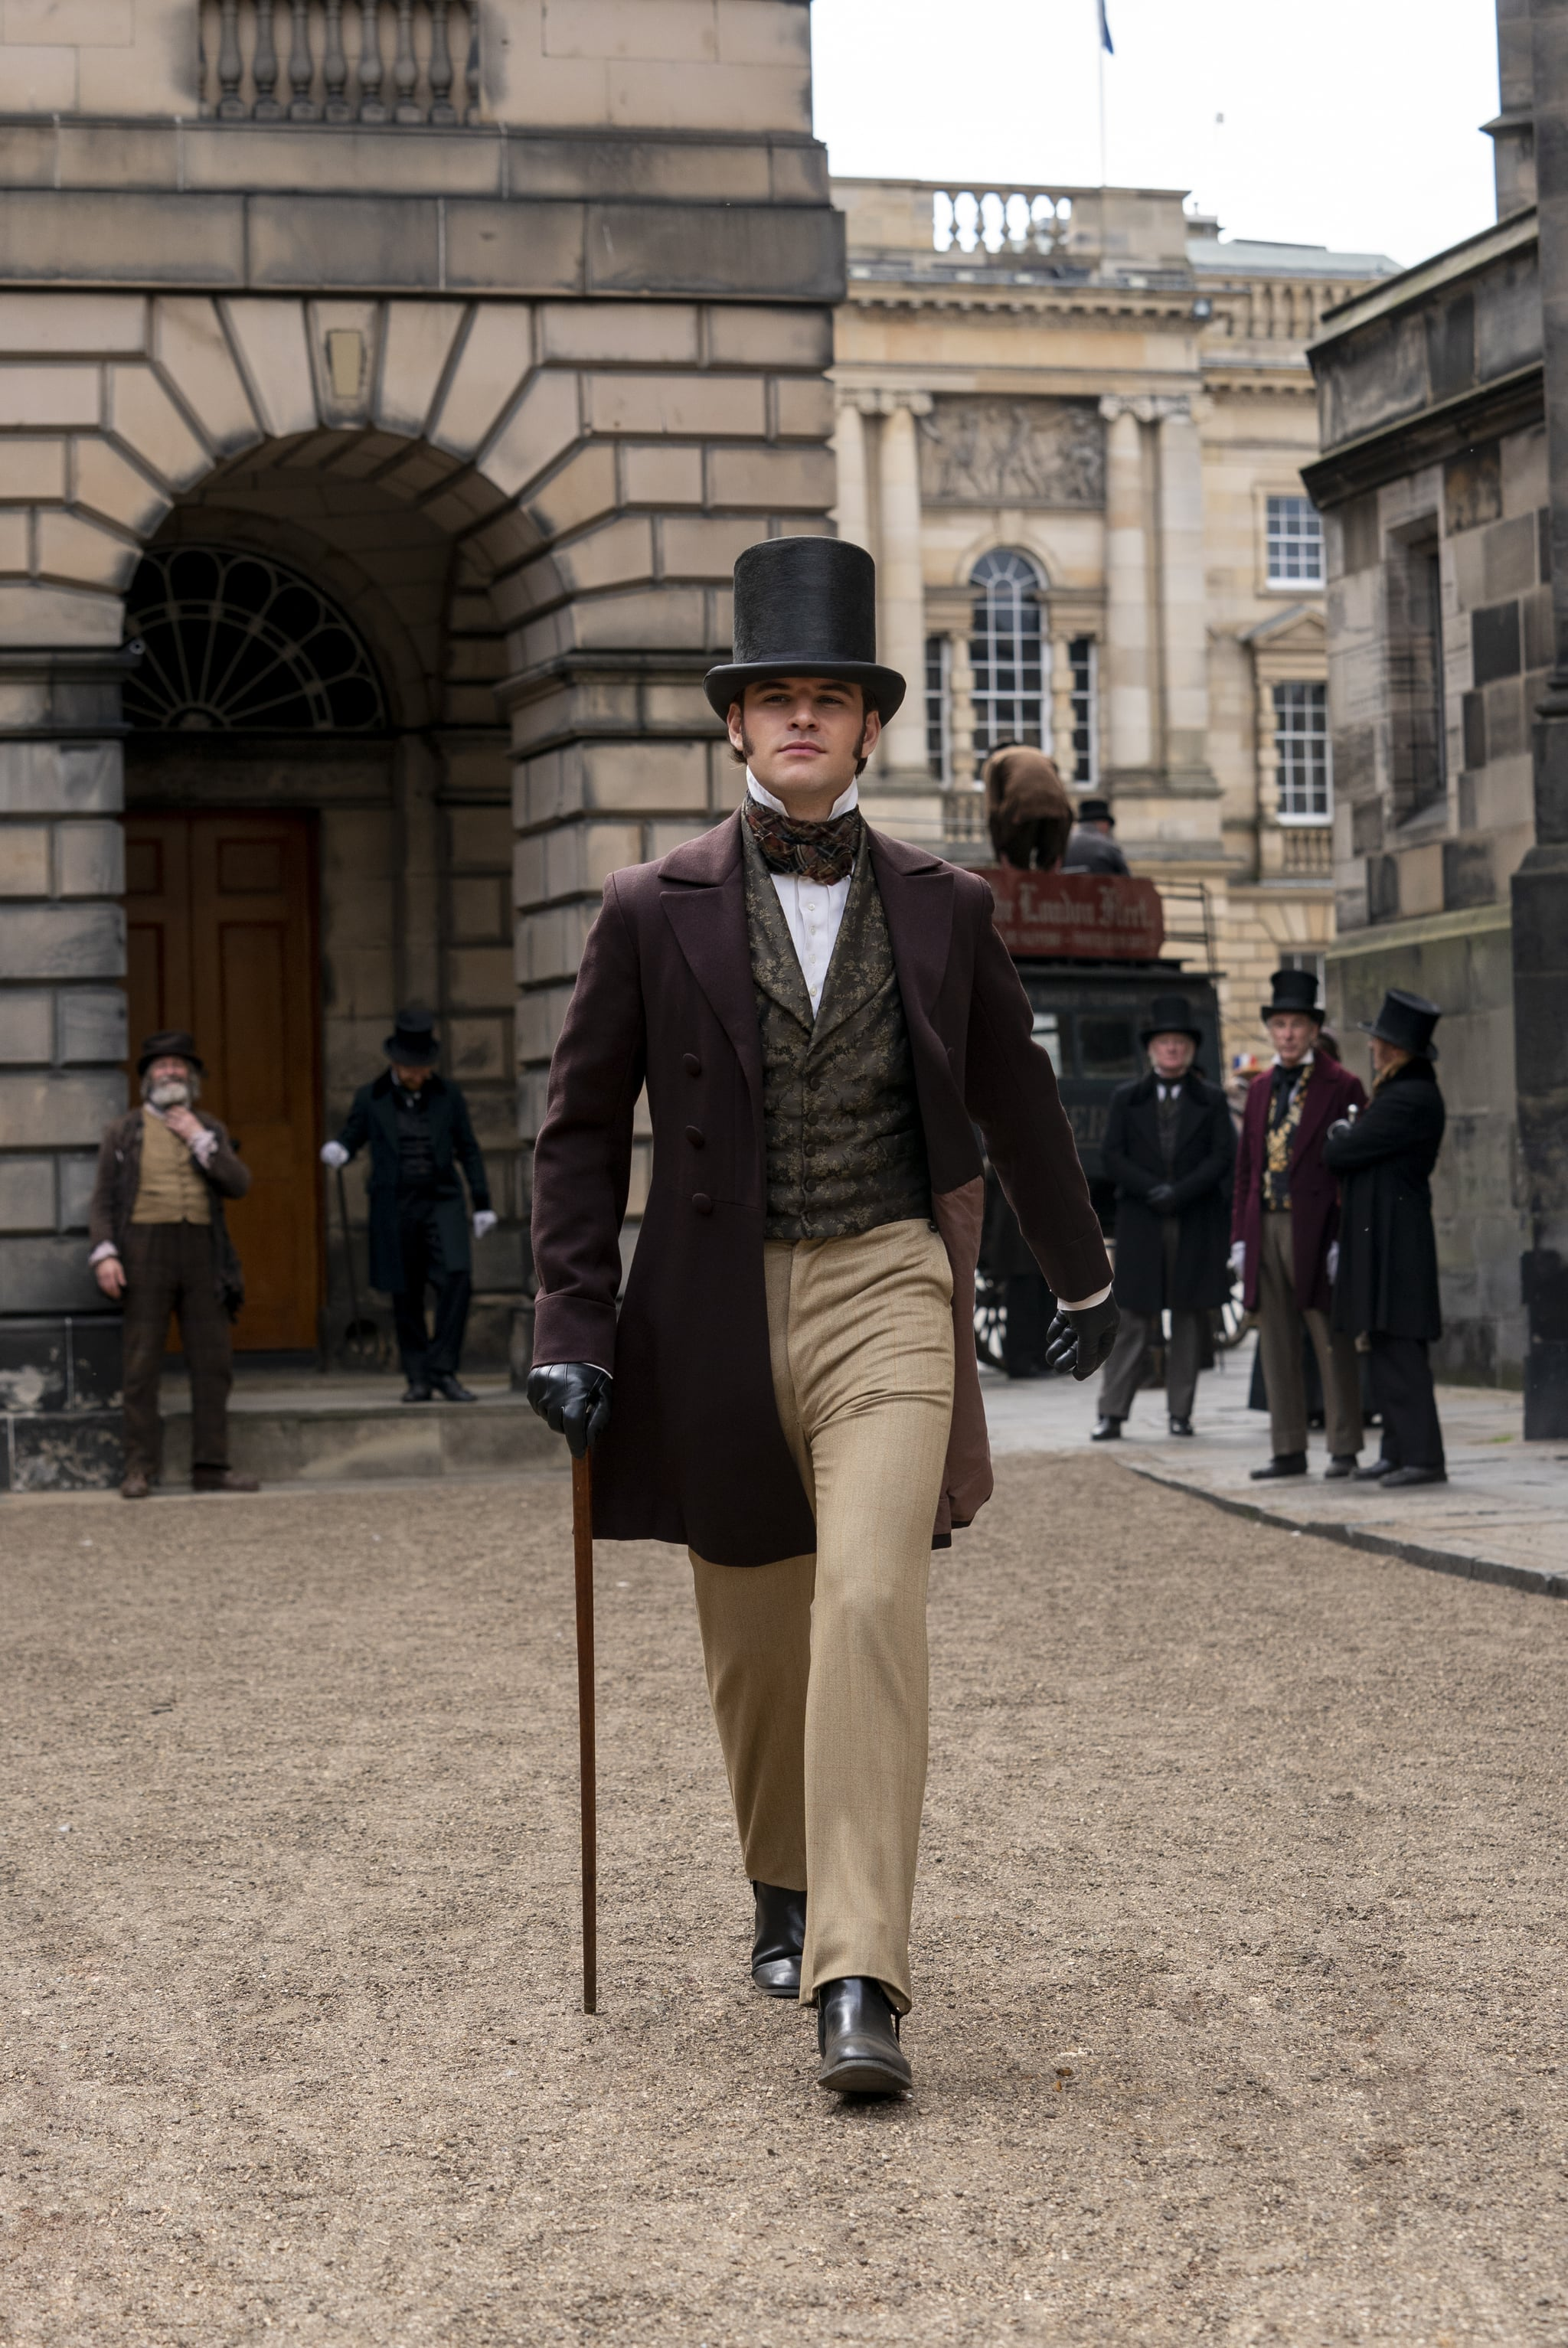 Belgravia, a brand new six-part series from Carnival Films coming to ITV and EPIX in 2020, tells Julian Fellowes intriguing tale of London society in the 19th Century.PICTURED: Jack Bardoe as Charles PopePhotographer Colin Hutton. The award-winning creative team behind Downton Abbey reunites with Fellowes, who has adapted from his bestselling novel of the same name for television screens, joined by a stellar ensemble cast including Tamsin Grieg, Philip Glenister, Harriet Walter, Tom Wilkinson and Alice Eve. Filming completed earlier this year at a range of stunning Victorian locations in London and the home counties, Edinburgh, Bath and Northumberland.  Belgravia is a story of secrets and dishonour amongst the upper echelon of London society in the 19th Century. When the Trenchards accept an invitation to the now legendary ball hosted by the Duchess of Richmond on the fateful eve of the Battle of Waterloo, it sets in motion a series of events that will have consequences for decades to come as secrets unravel behind the porticoed doors of Londons grandest postcode.  Carnival Films Gareth Neame is executive producer alongside Nigel Marchant, Liz Trubridge and Fellowes. John Alexander (Sense & Sensibility, Trust Me) directed the limited series with Colin Wratten (Killing Eve) producing.